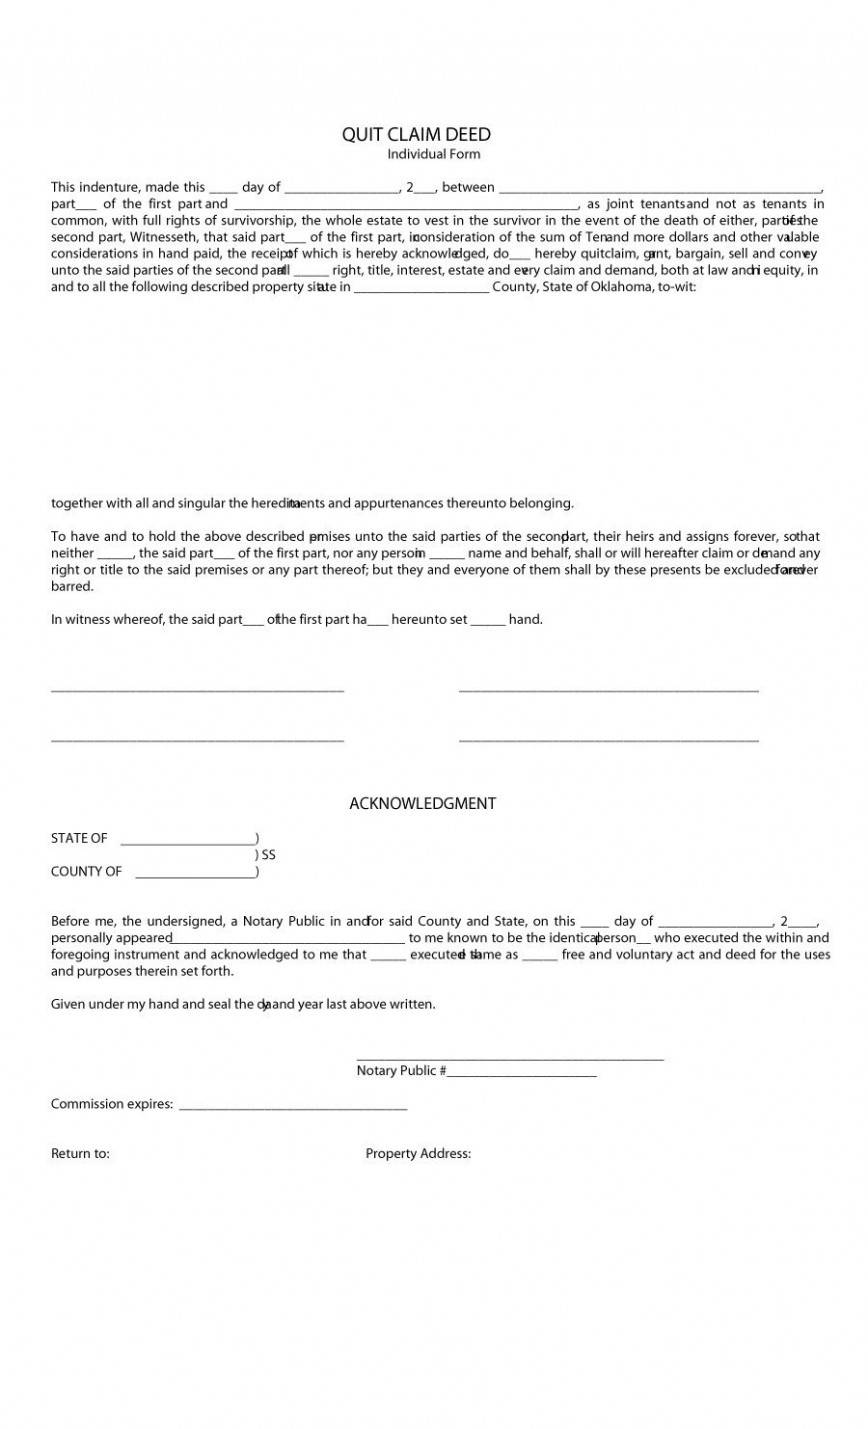 Quit Claim Deed Template Indiana